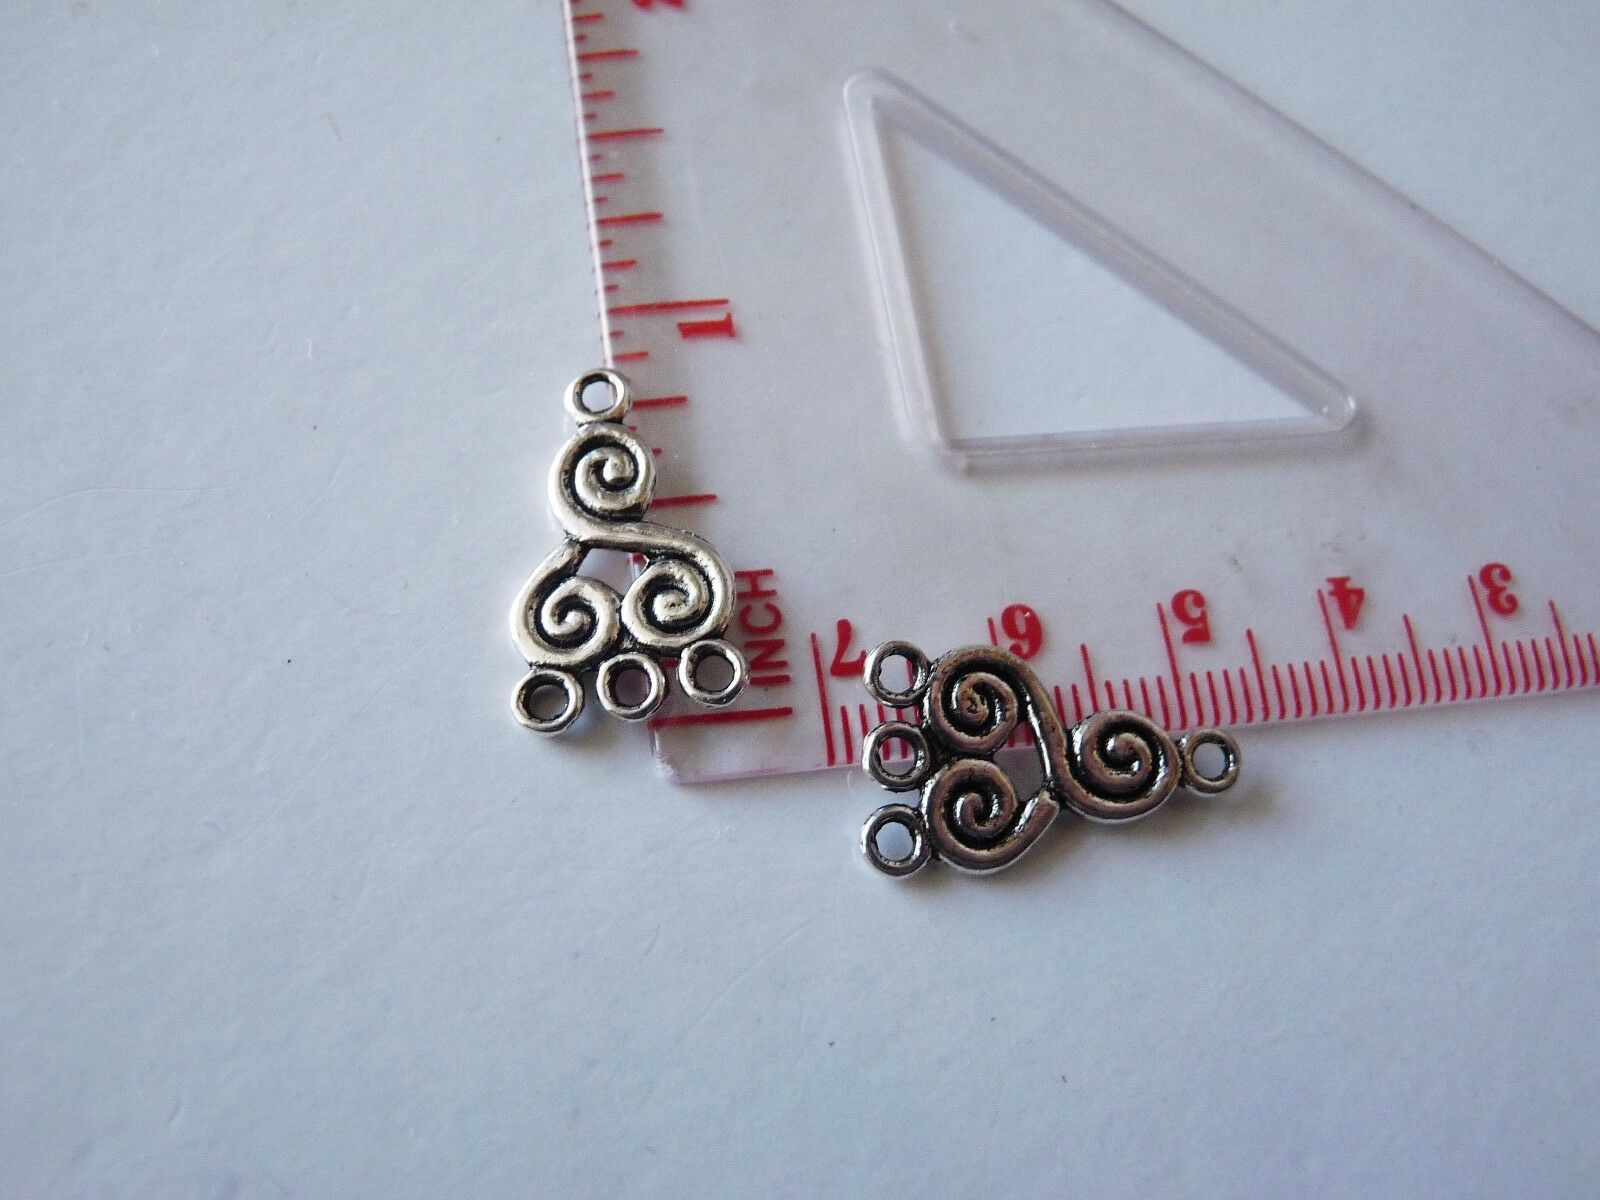 6x Chandelier 3 Hole Earring Finding 3 Strand Connector Necklace 2 Sided C438